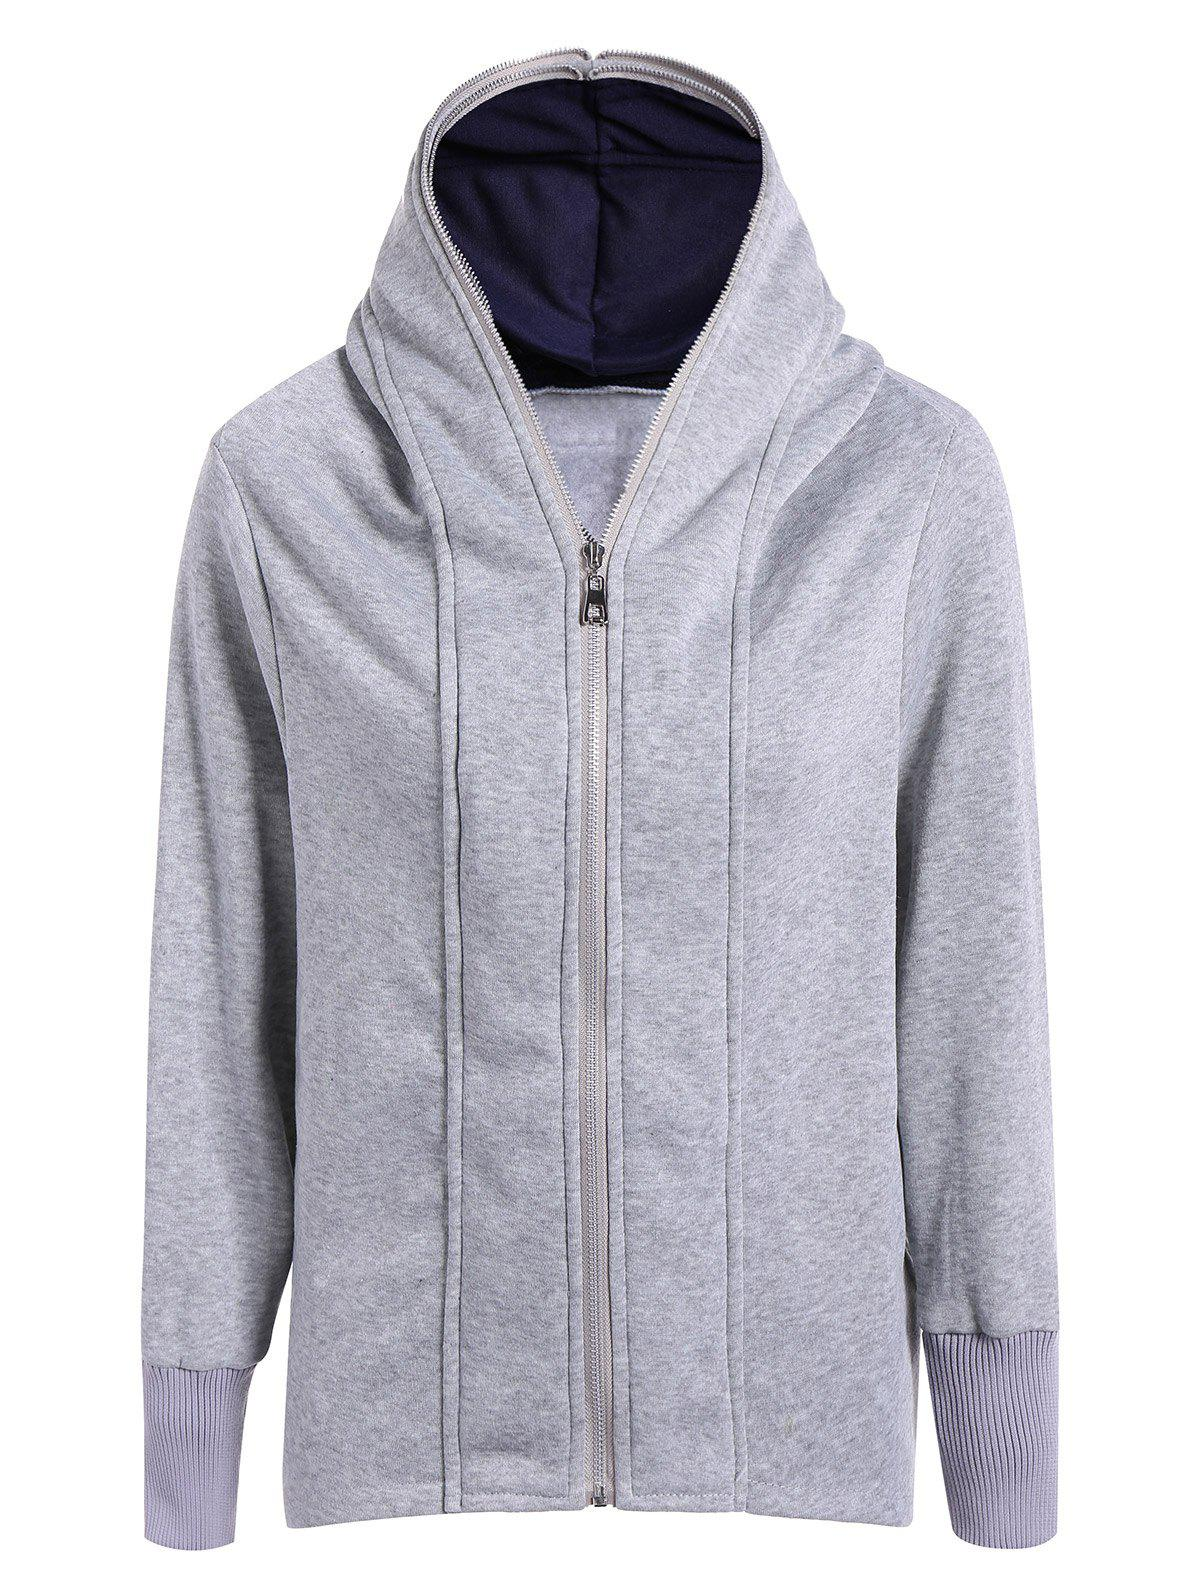 Casual Double Zippers Plus Size Hoodie - LIGHT GRAY XL